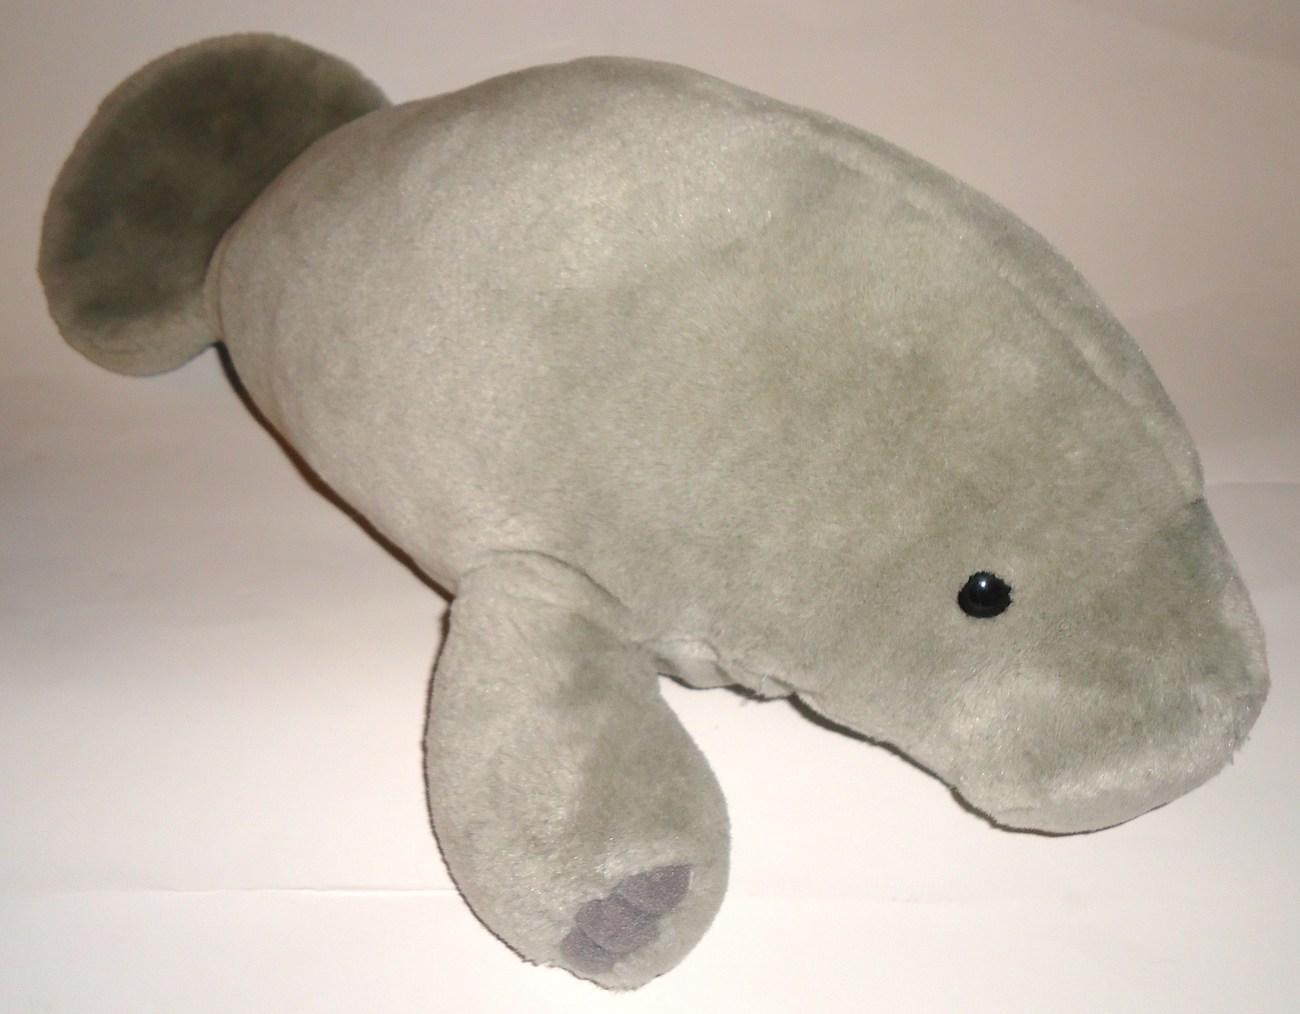 Sea World Manatee Gray Sea Cow Plush Stuffed Animal Souvenir Toy Realistic Large